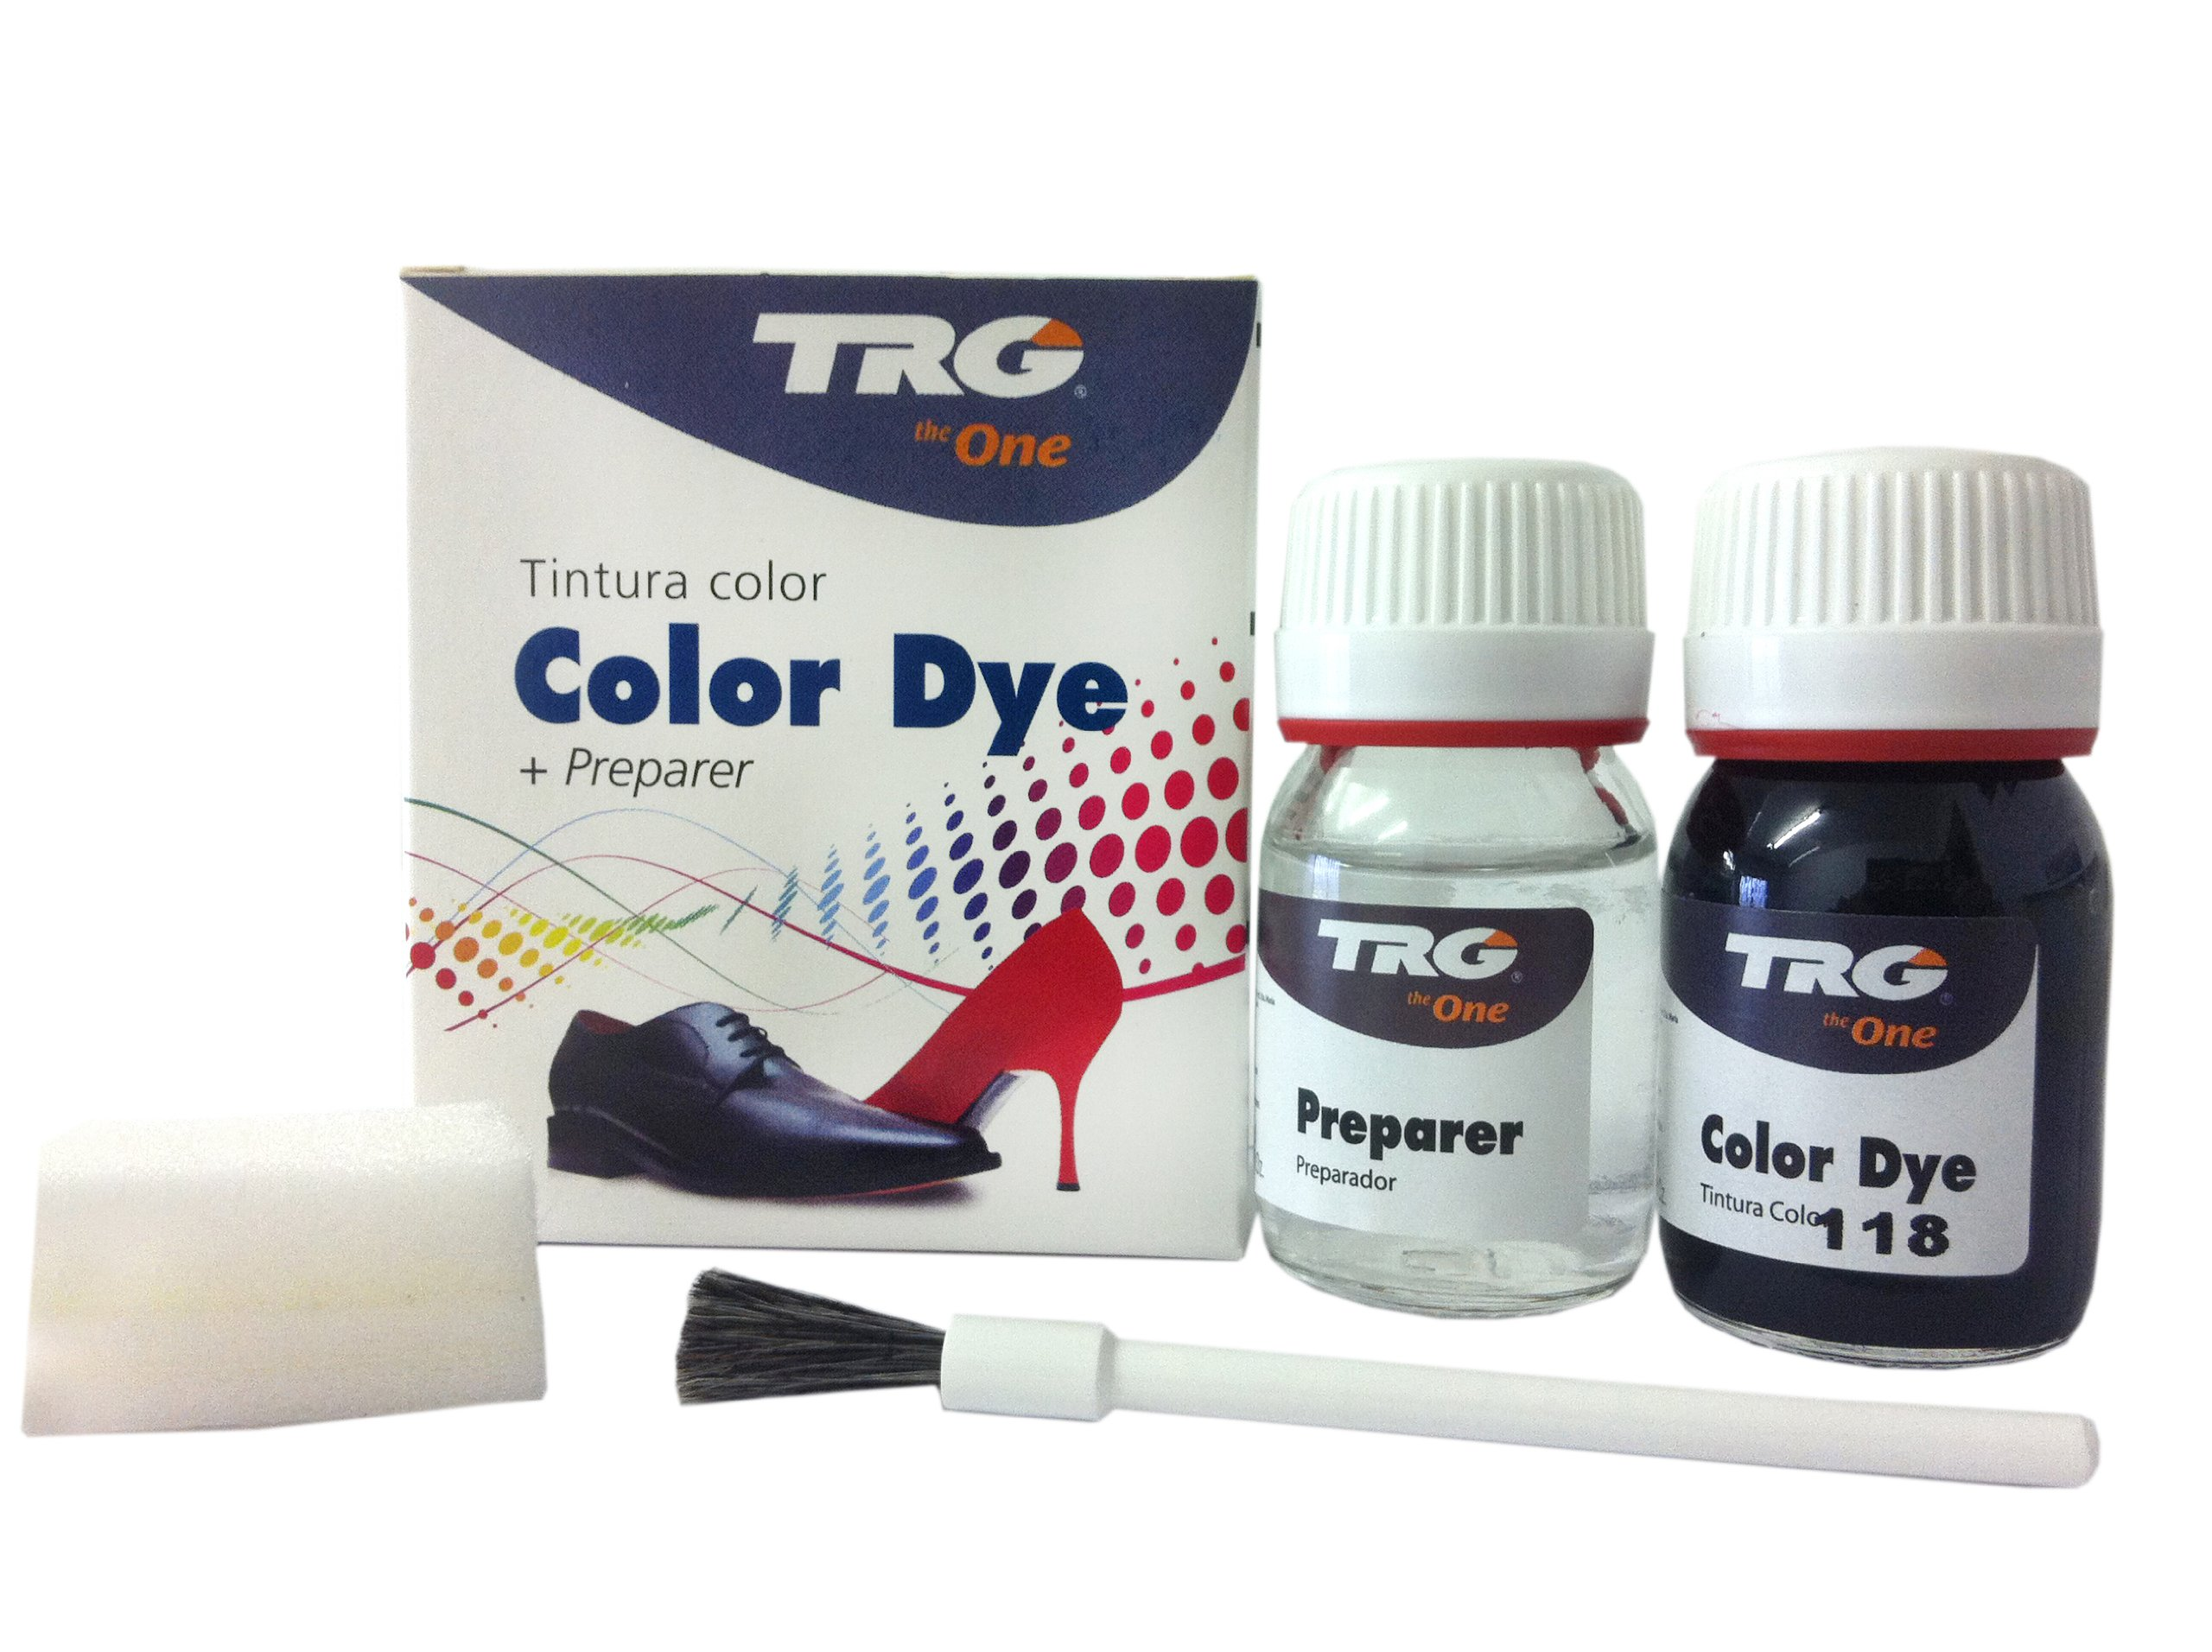 TRG the One Self Shine Leather Dye Kit